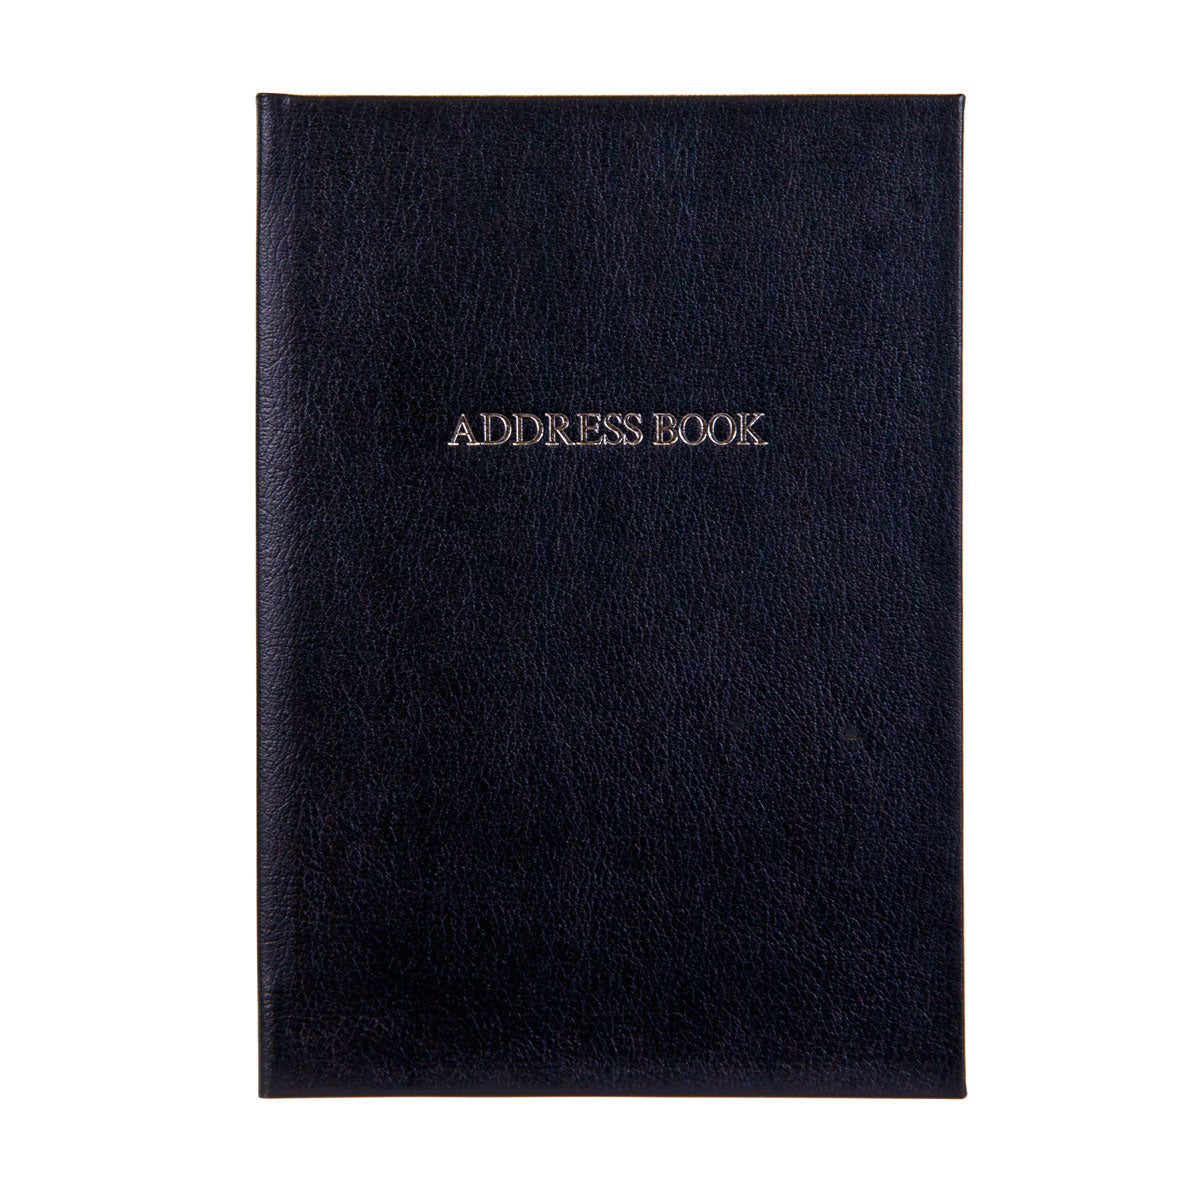 Black Leather Address book with silver embossed title